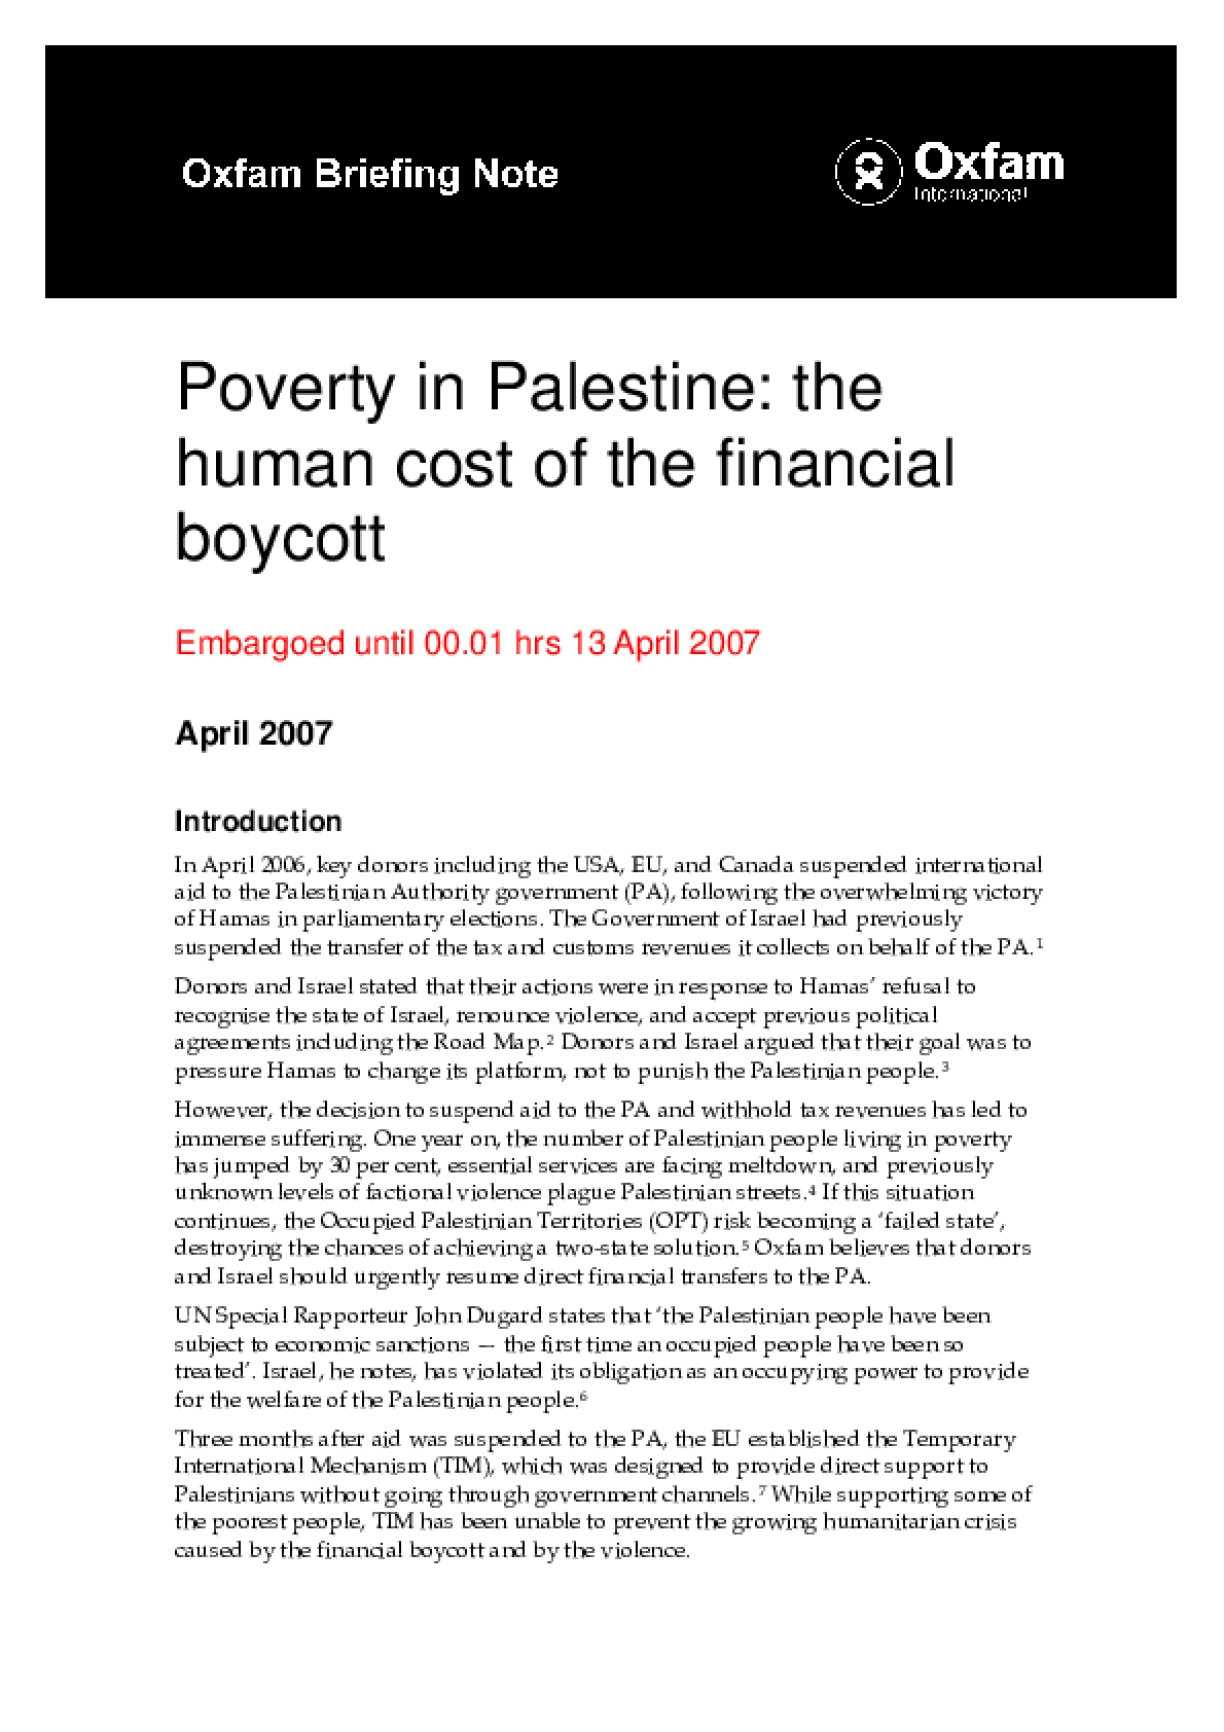 Poverty in Palestine: The human cost of the financial boycott